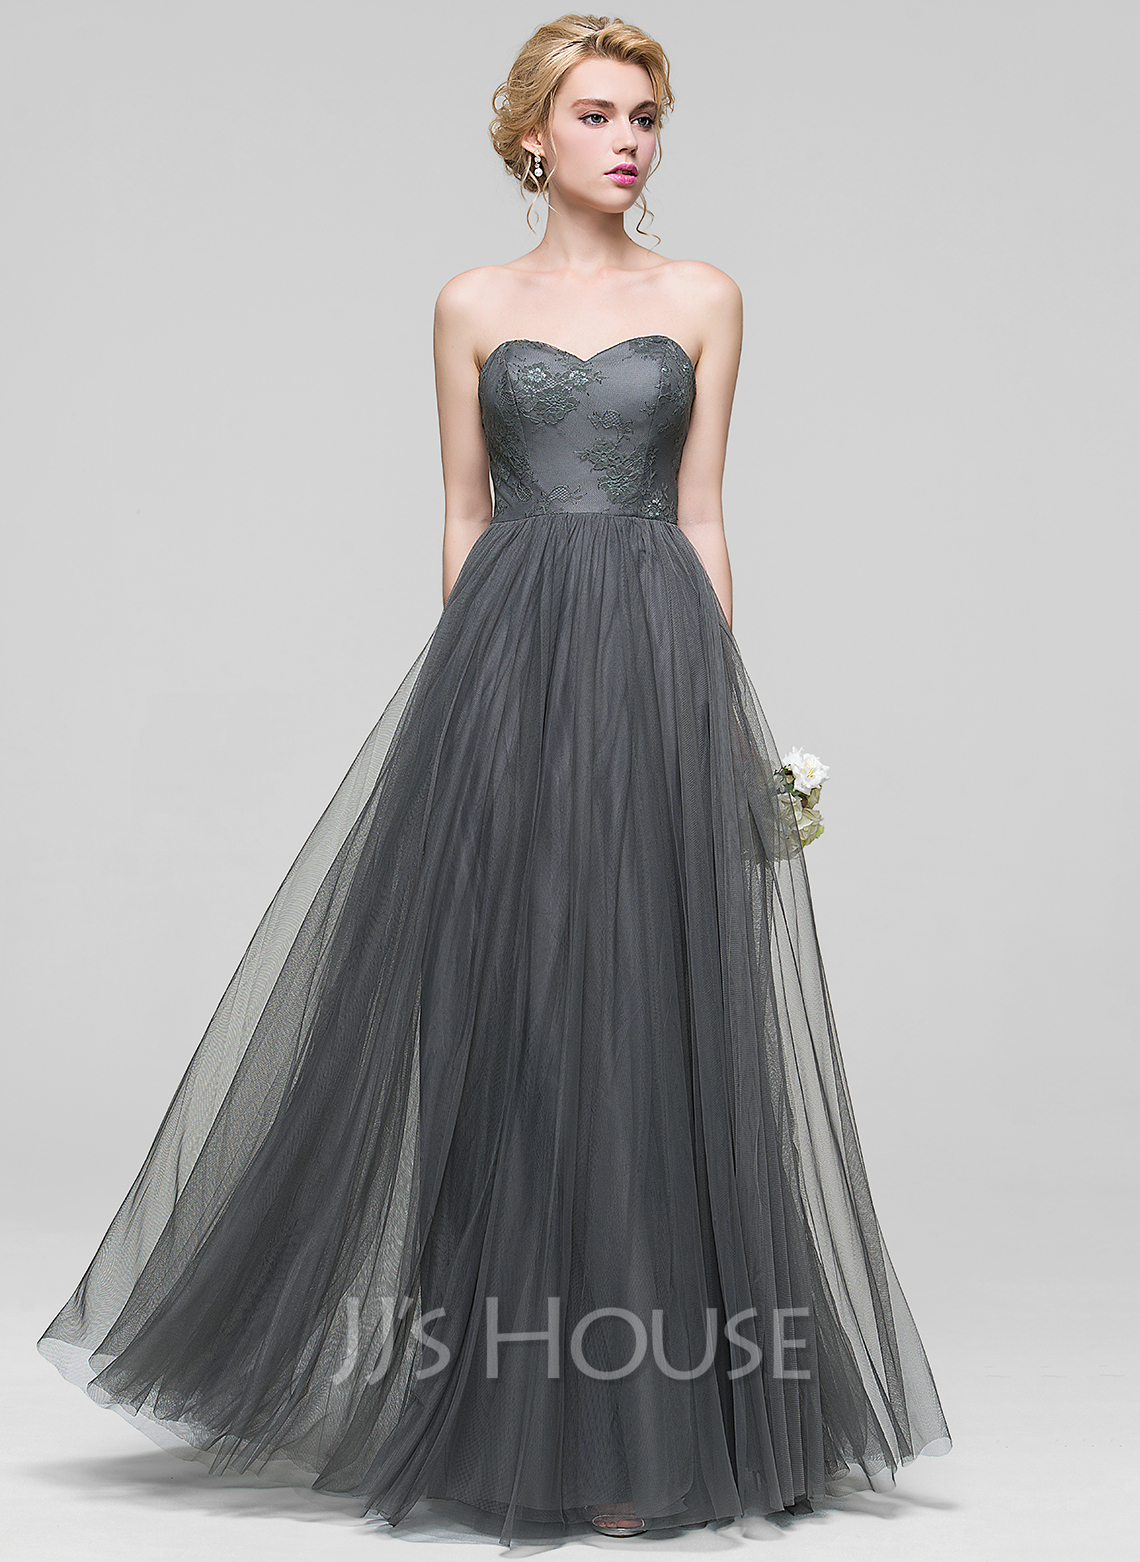 A-Line/Princess Sweetheart Floor-Length Tulle Bridesmaid Dress With Lace